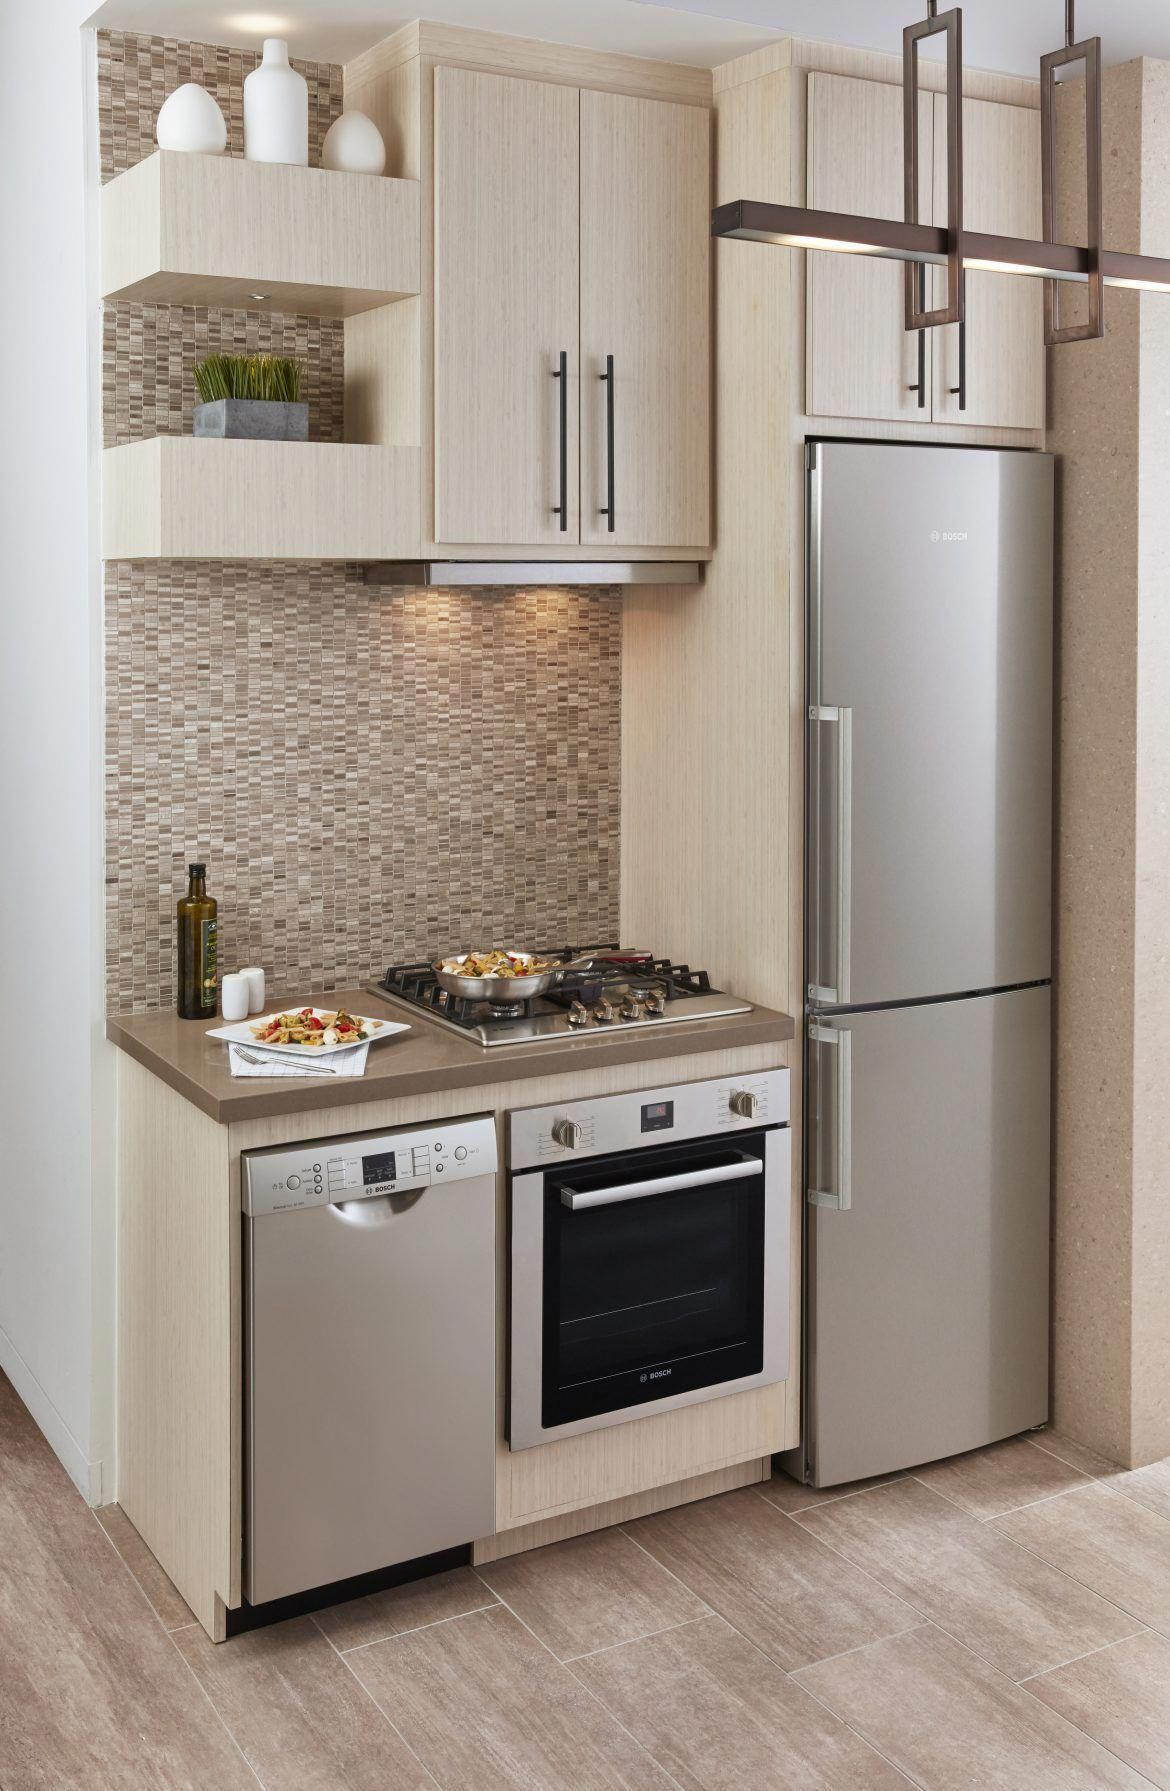 Browse Photos Of Small Kitchen Designs. Discover Inspiration For Your Small  Kitchen Remodel Or Upgrade